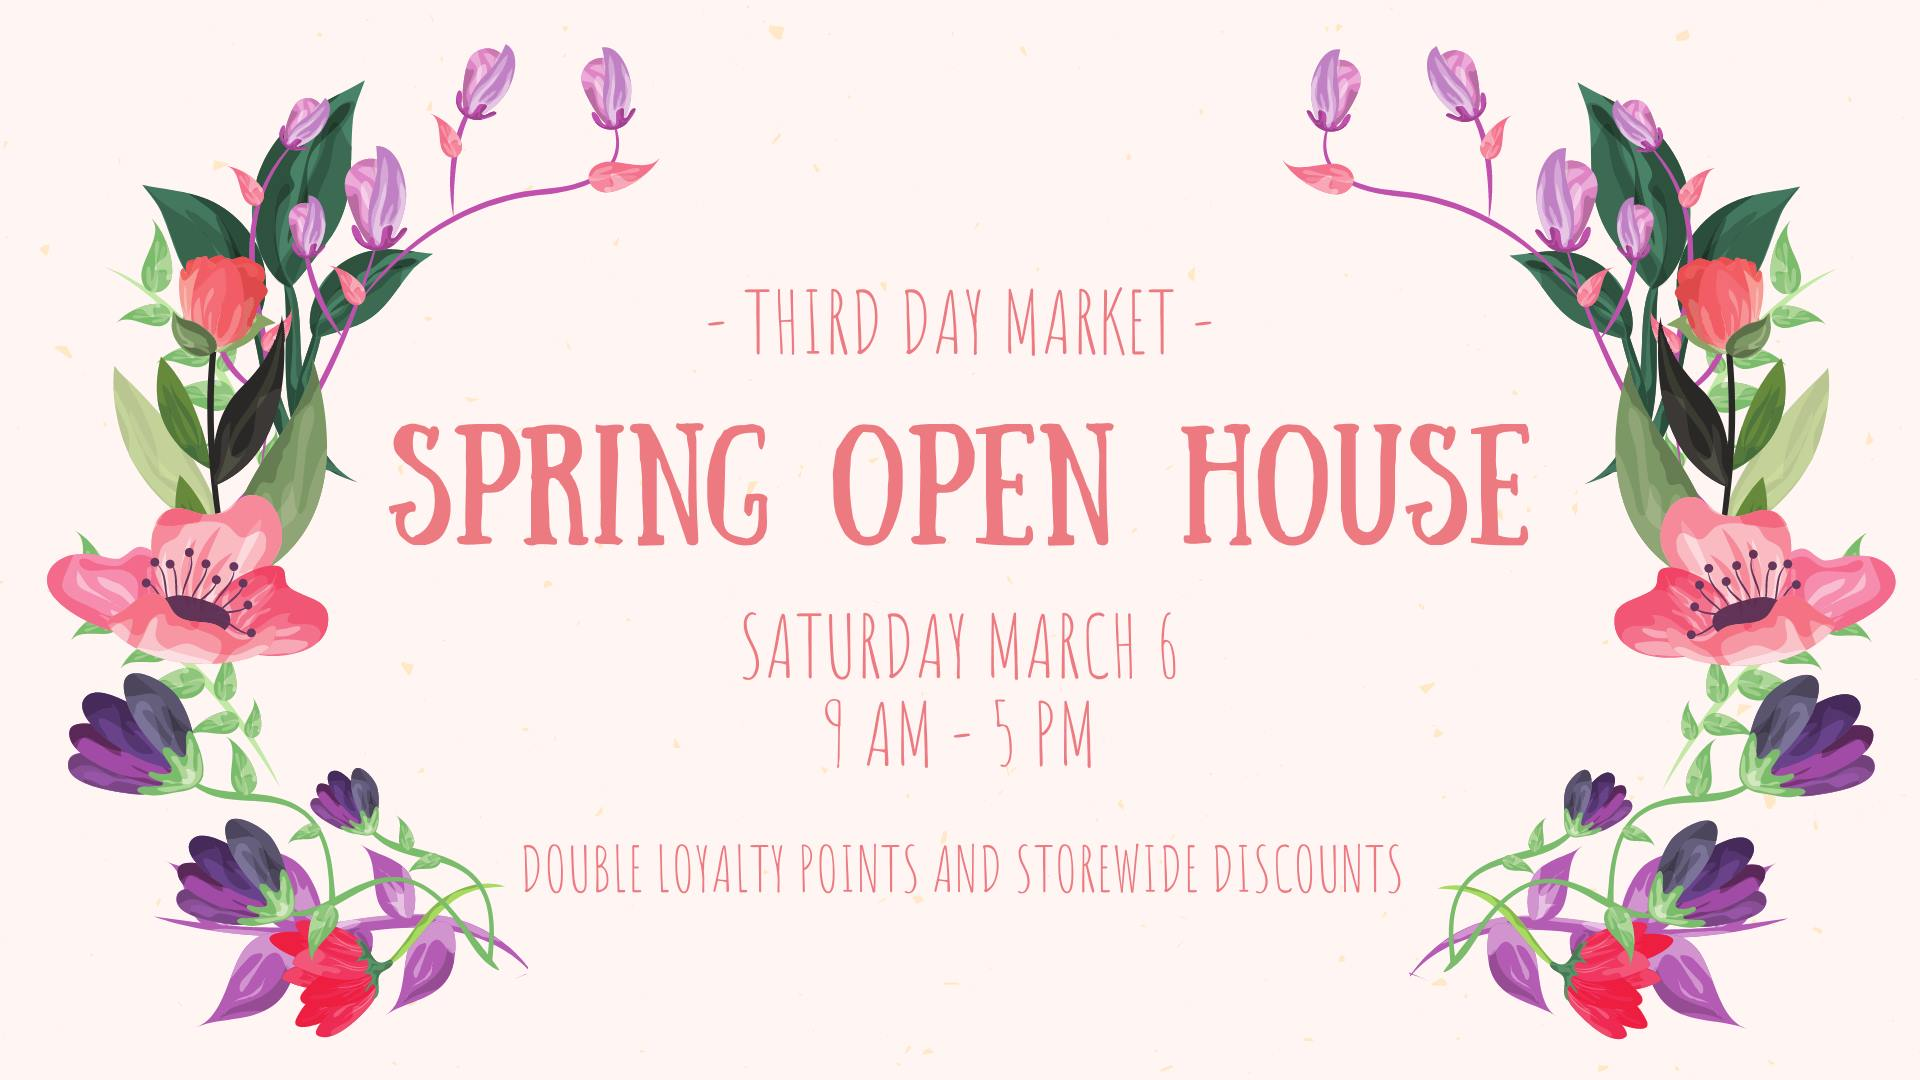 spring open house at third day market